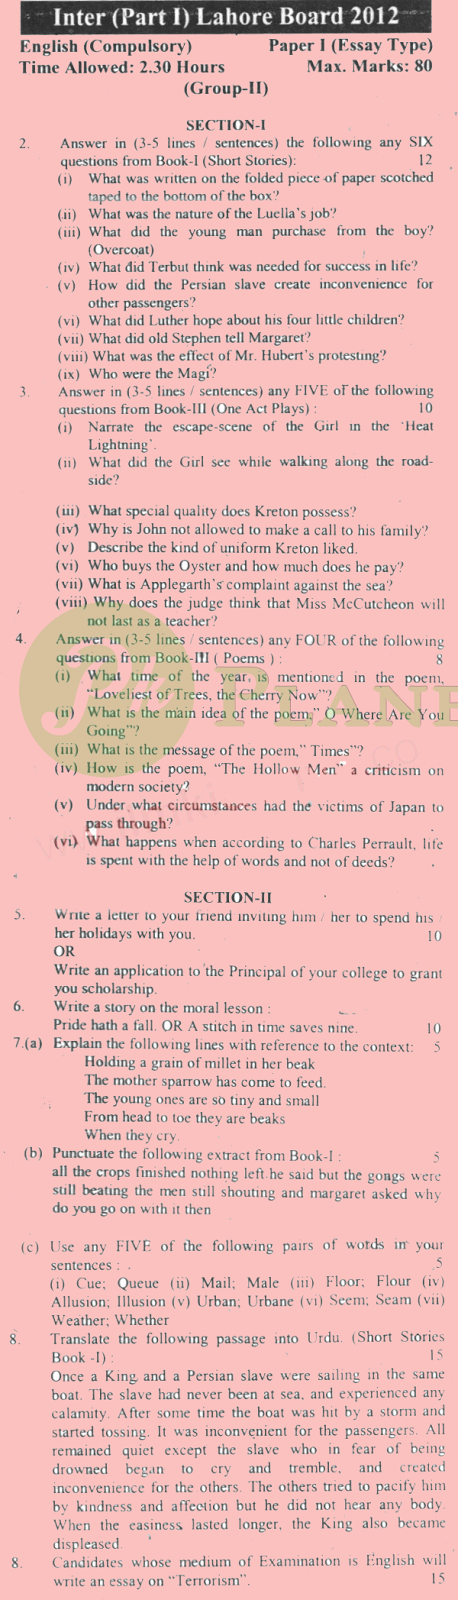 Inter Part 1 English Past Papers Lahore Board 2012